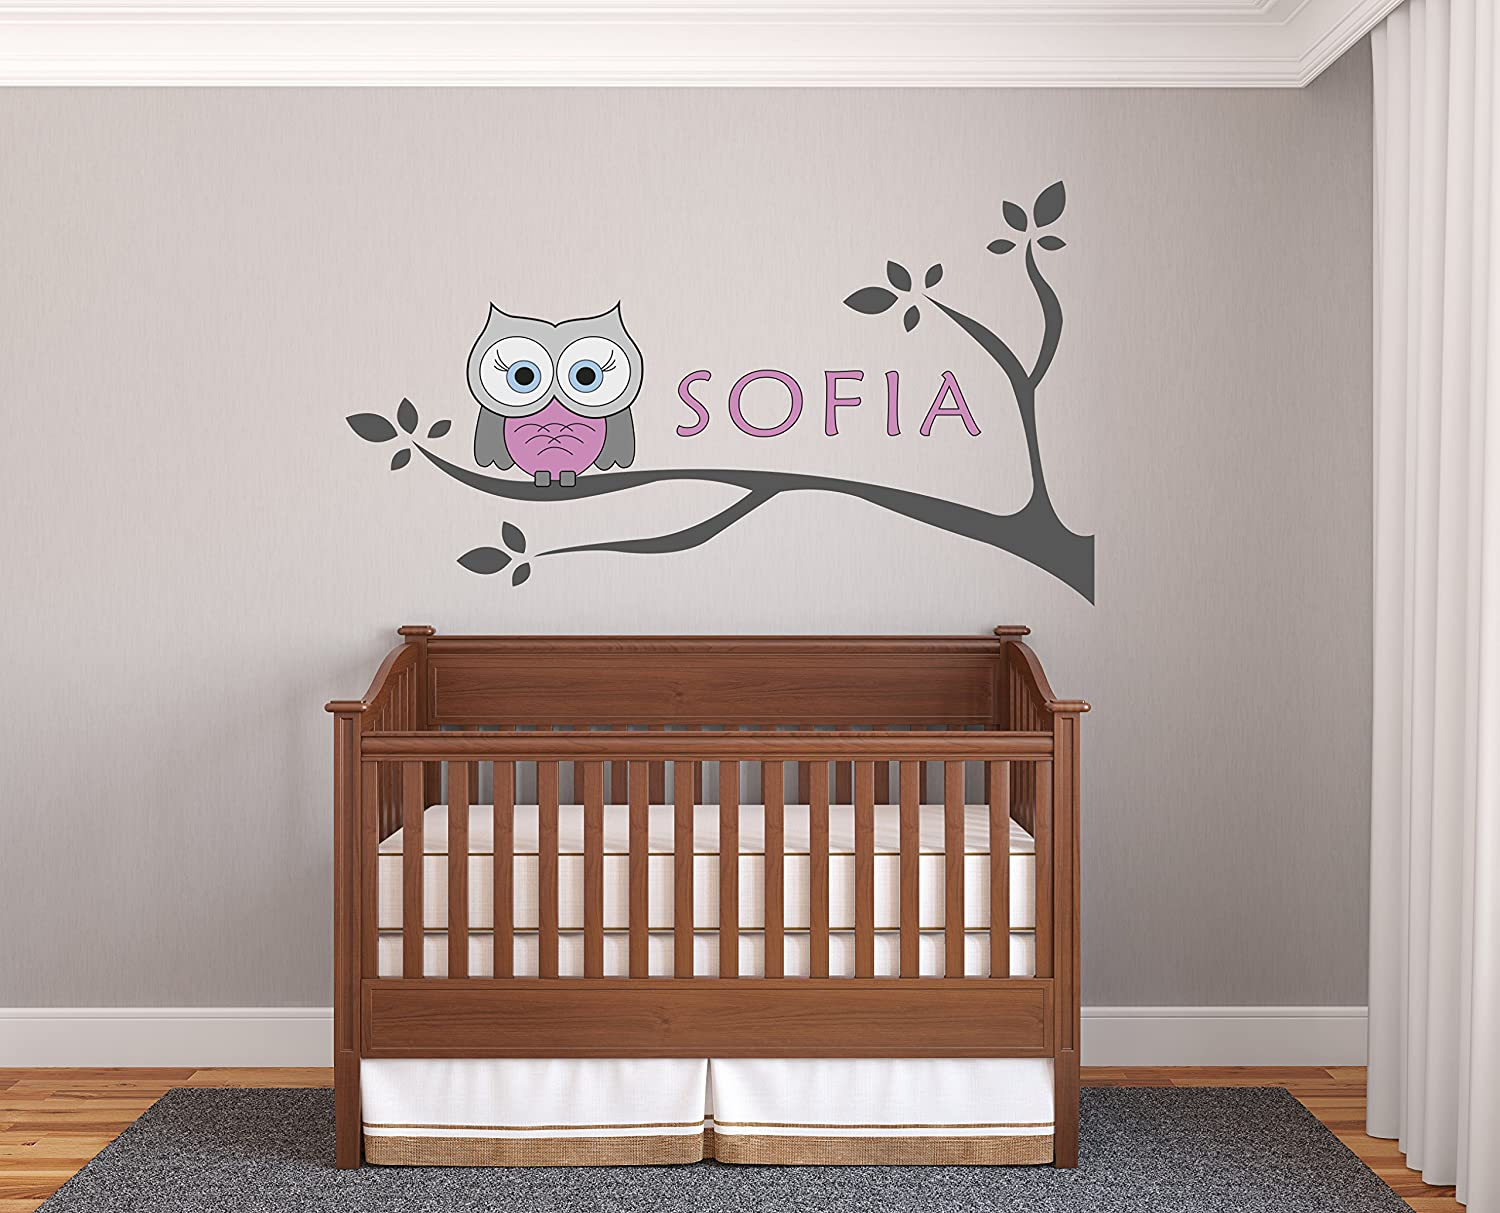 """Personalized Name Owl and Branches - Prime Series - Baby Girl - Nursery Wall Decal for Baby Room Decorations - Mural Wall Decal Sticker for Home Children's Bedroom(02J) (Wide 24""""x14"""" Height)"""